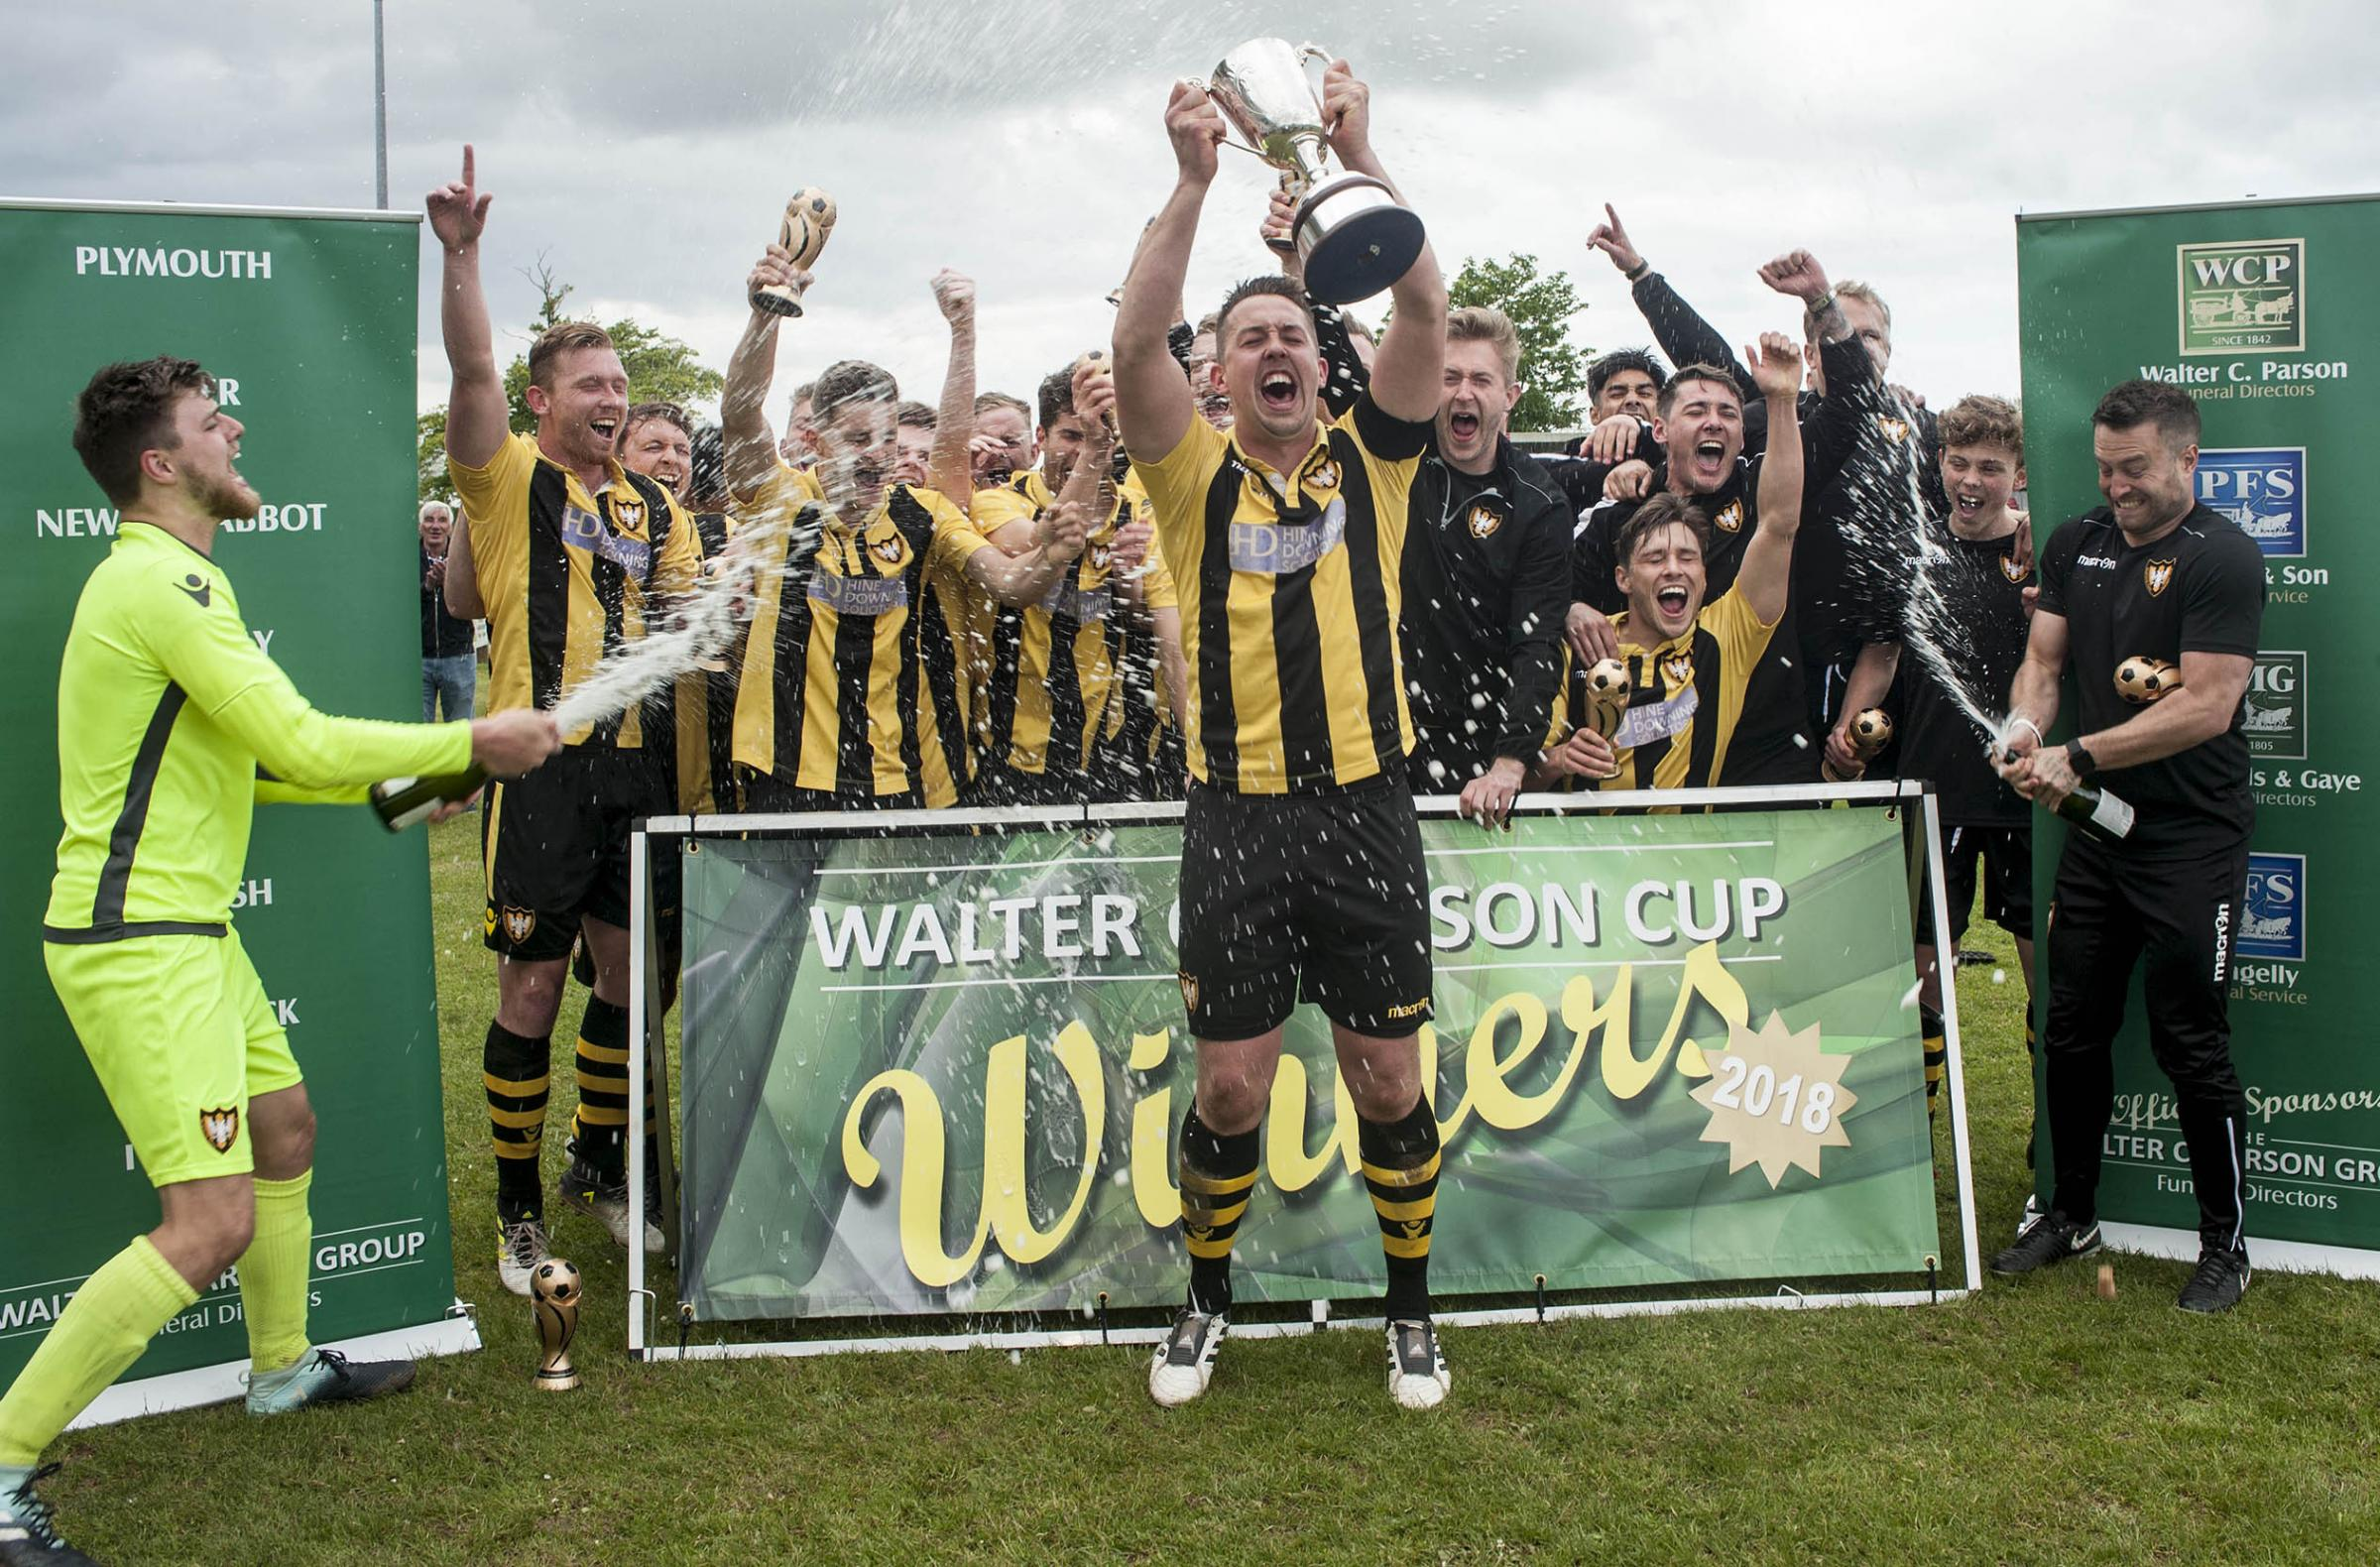 The re-structure of divisions in football in Cornwall and Devon will see two new Premier Divisions created